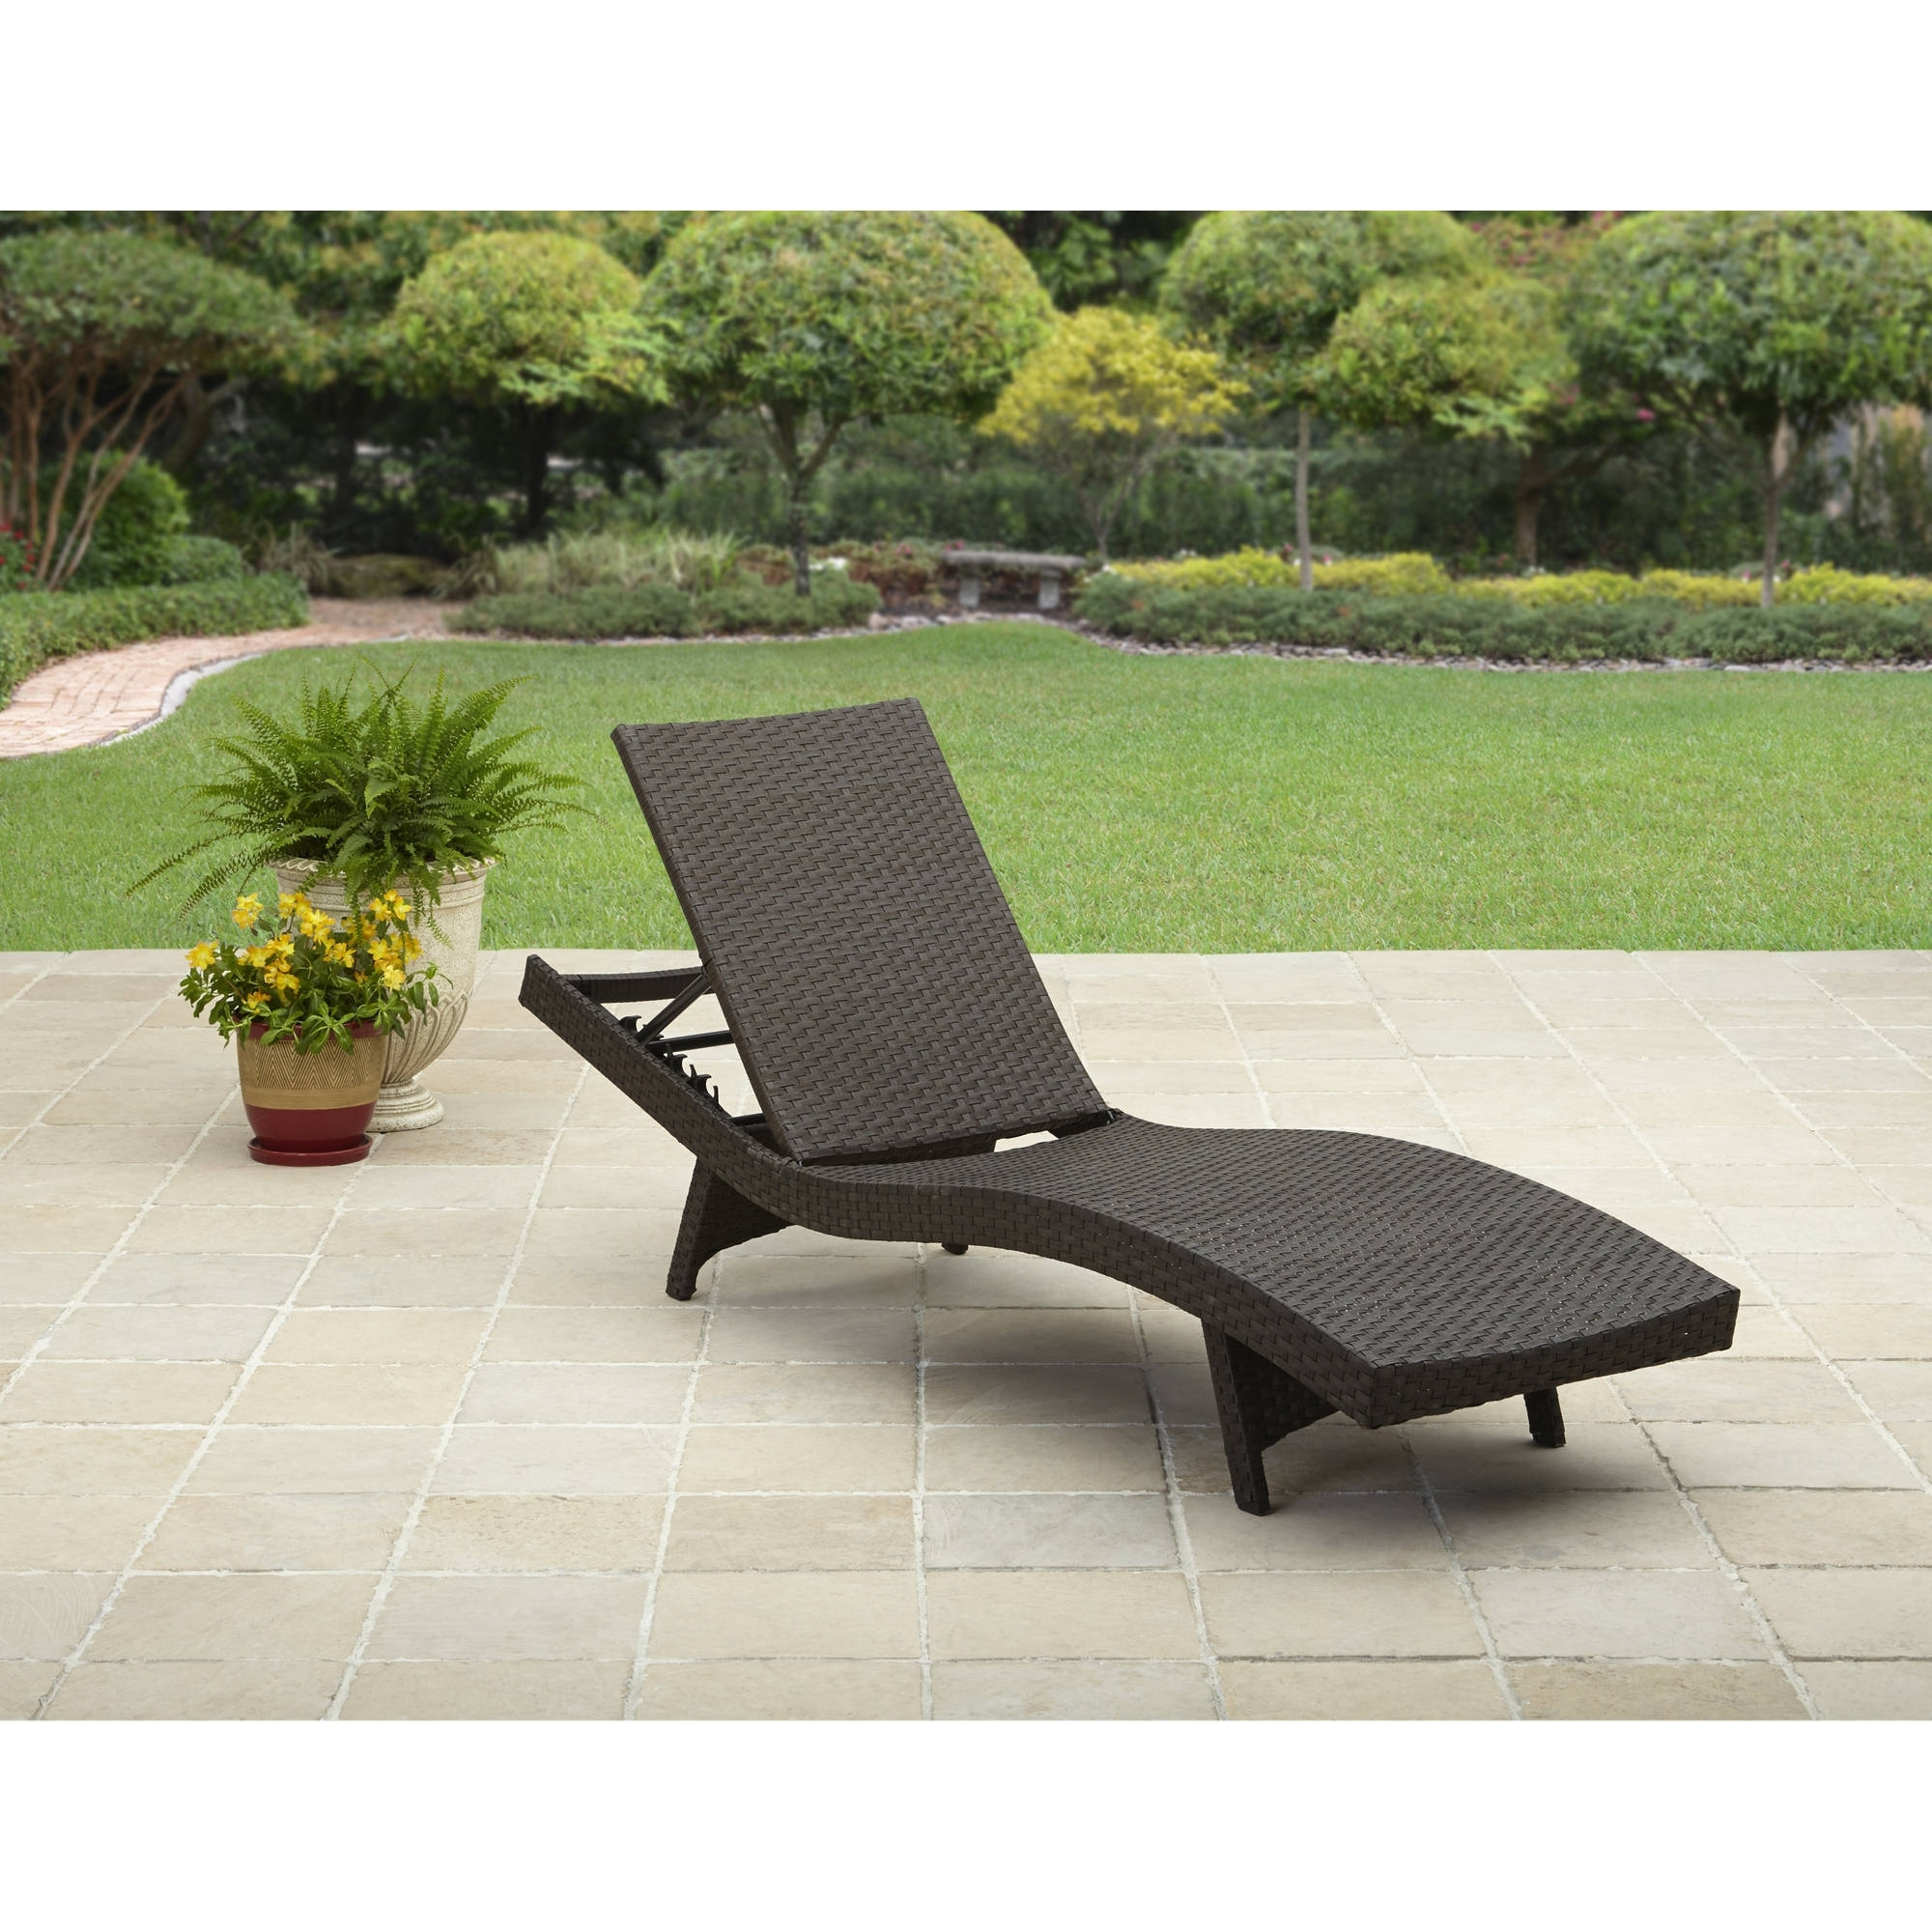 Most Current Portable Outdoor Chaise Lounge Chairs Inside Better Homes And Gardens Avila Beach Chaise – Walmart (View 14 of 15)